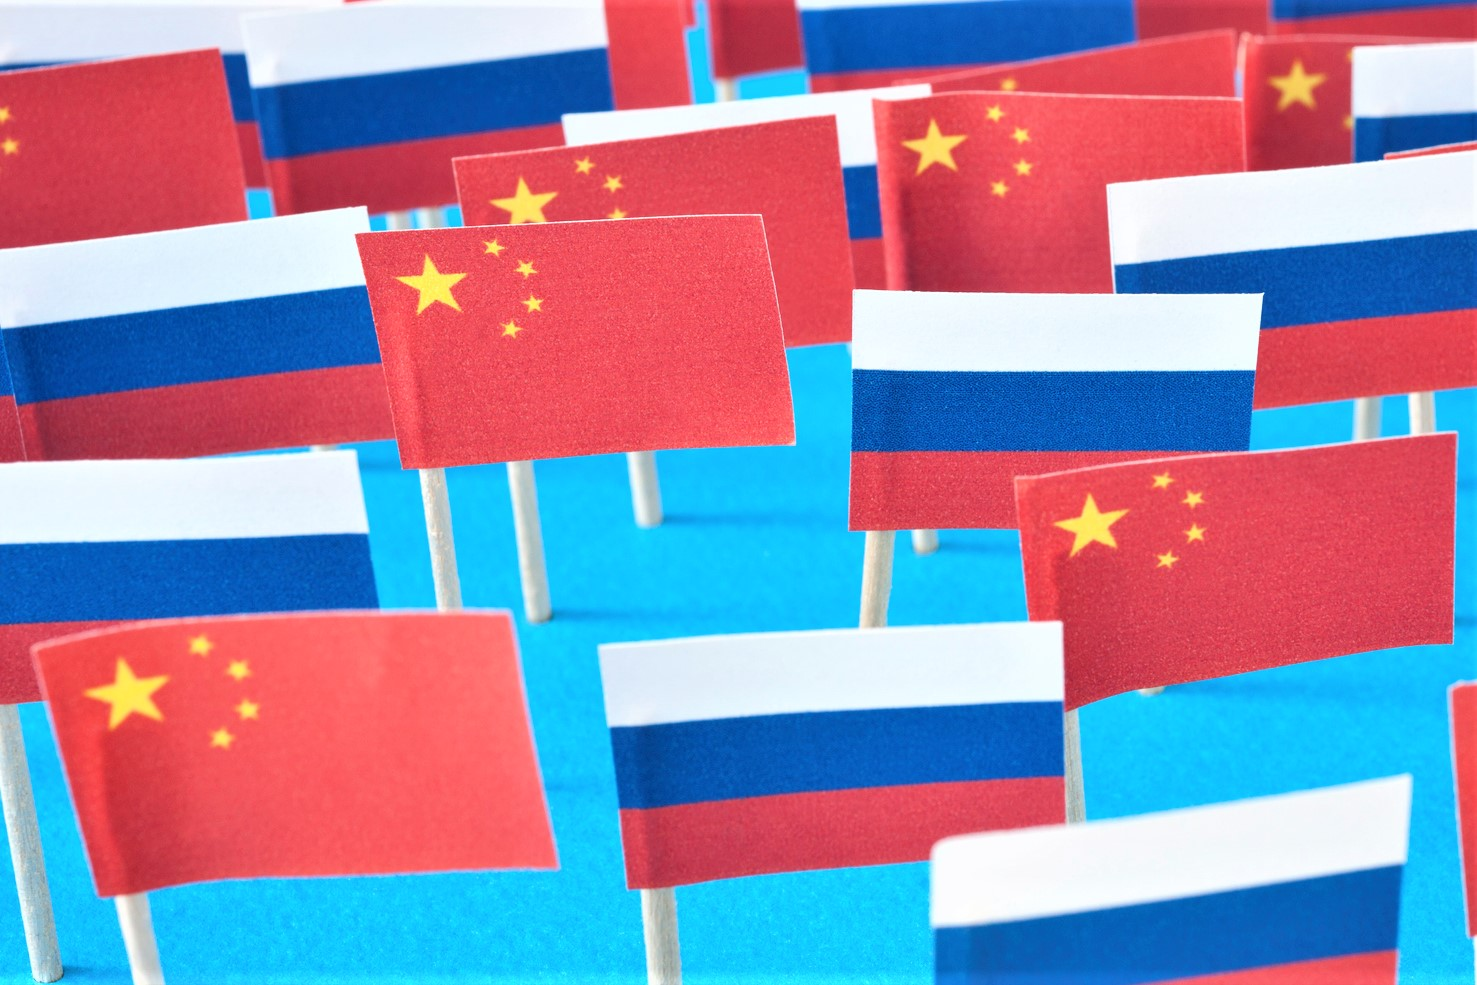 Russian, Chinese Capital 'Threat' to Bithumb + More Crypto Briefs